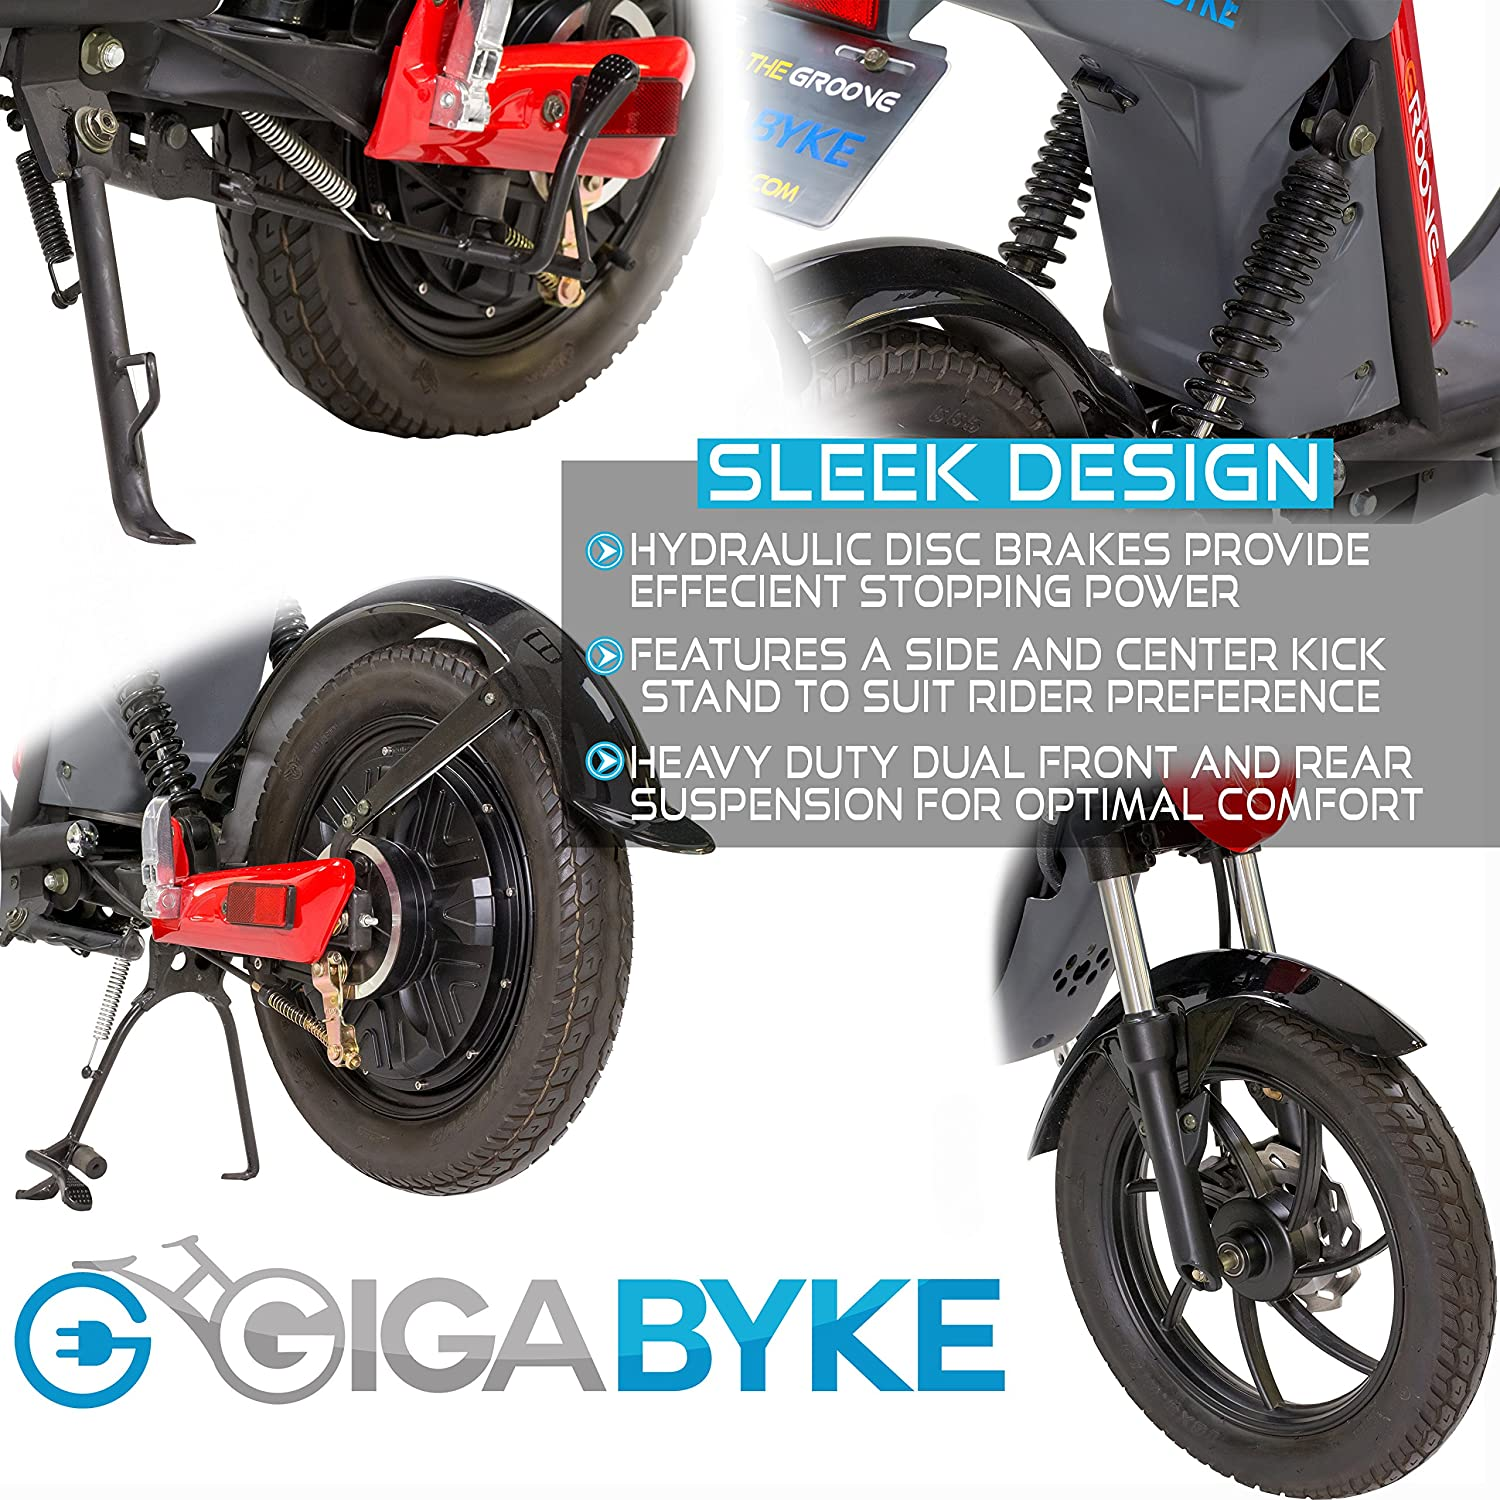 Gigabyke Groove 750 Watt Motorized E Bike Street Wiring Diagram For Bicycle Legal Electric Moped With Pedals 2018 Enhanced V2 Version Black Sports Outdoors